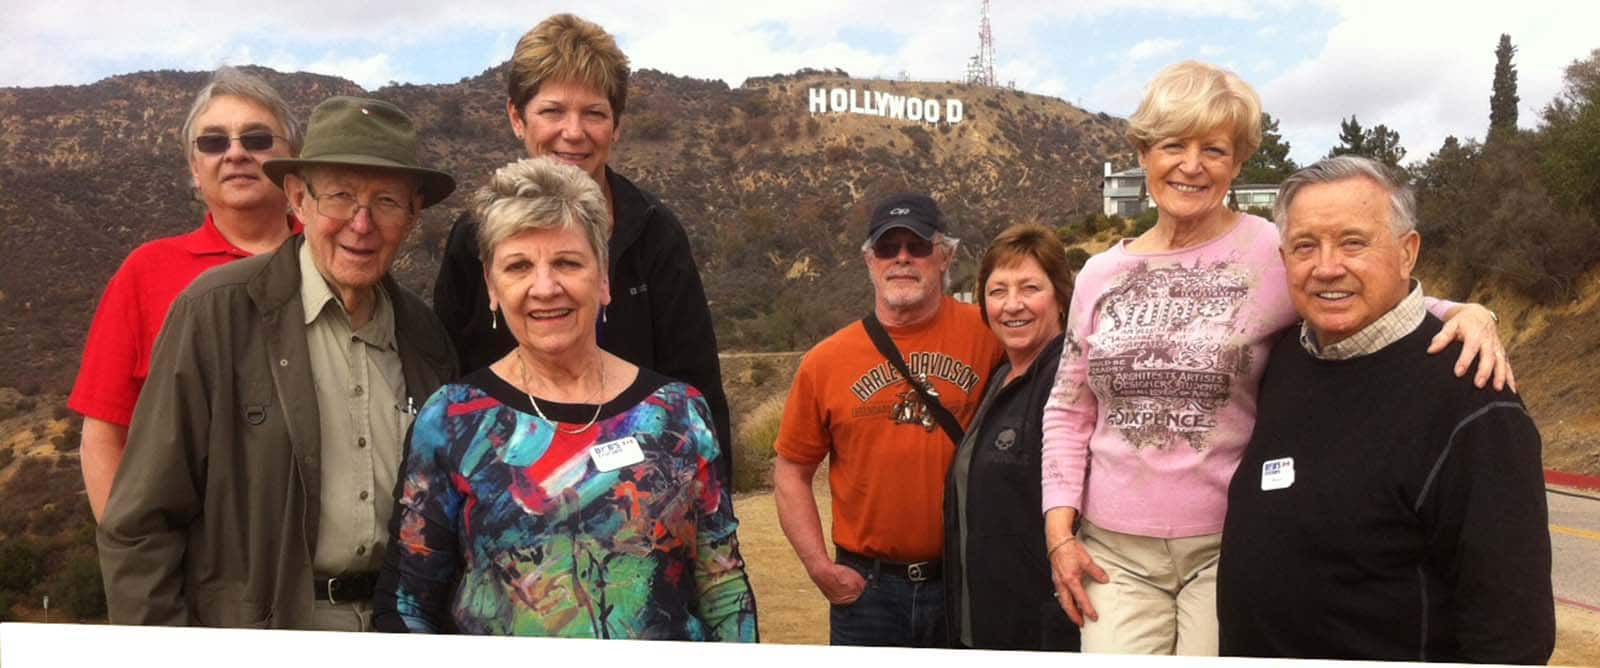 Group of 8 Hollywood Sign for home page